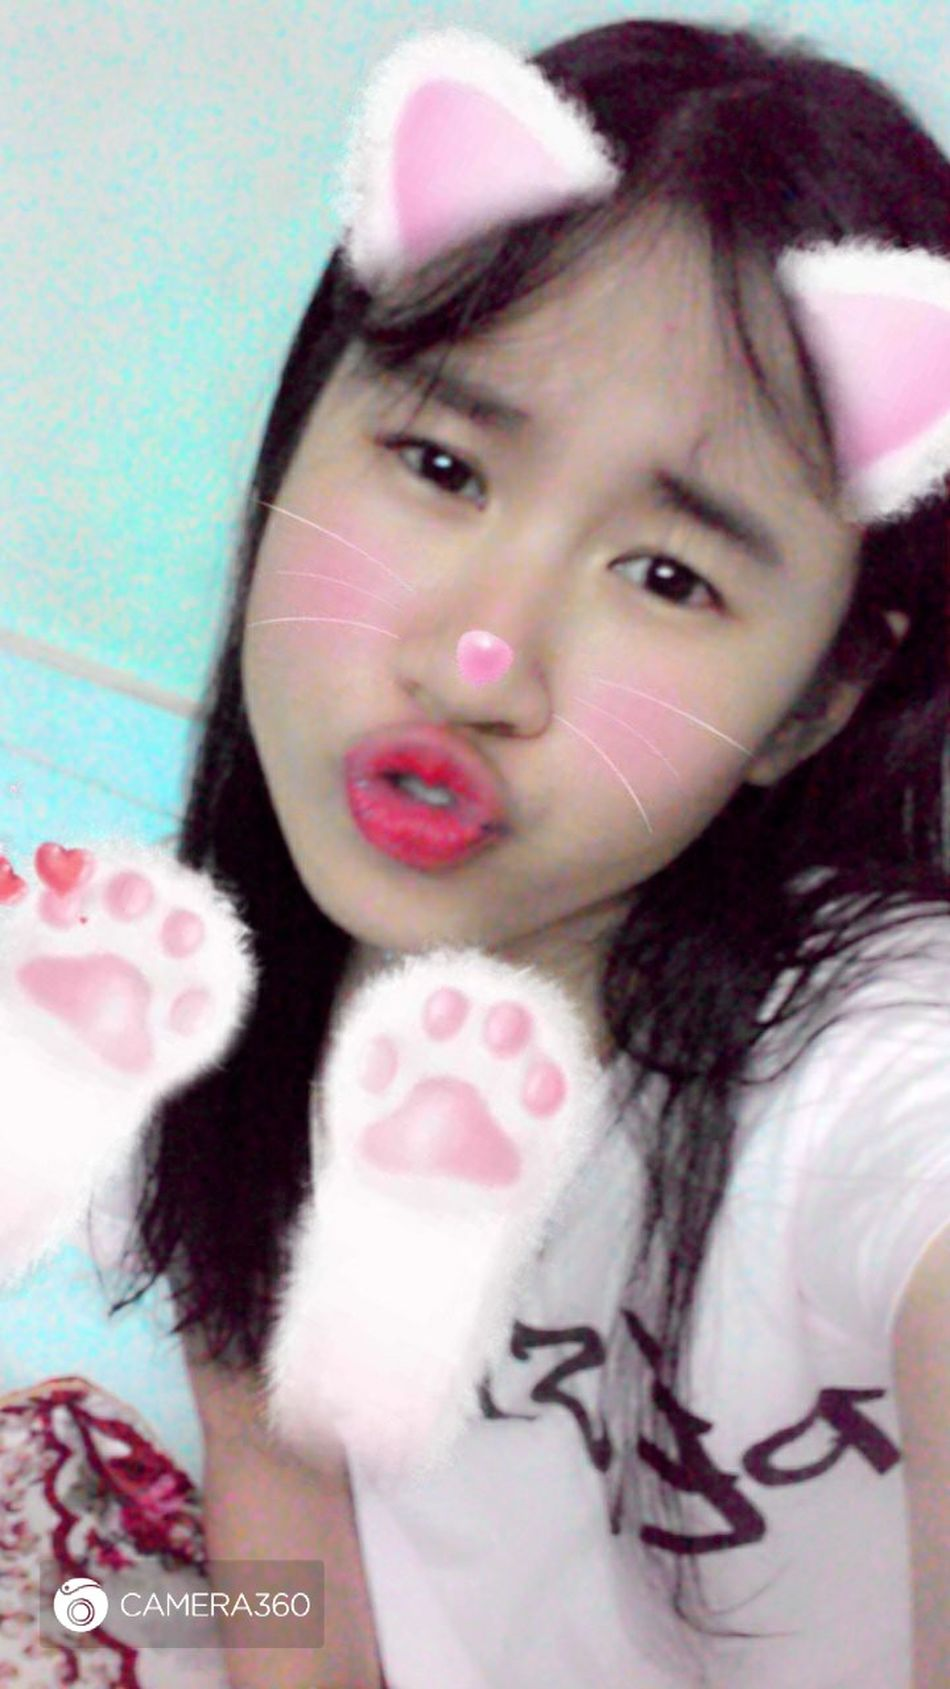 Meow...meow...🐁🐁🐱🐱 Khitoi18 Be Strong Girl Kids Being Kids 很可爱 Beautiful 加油